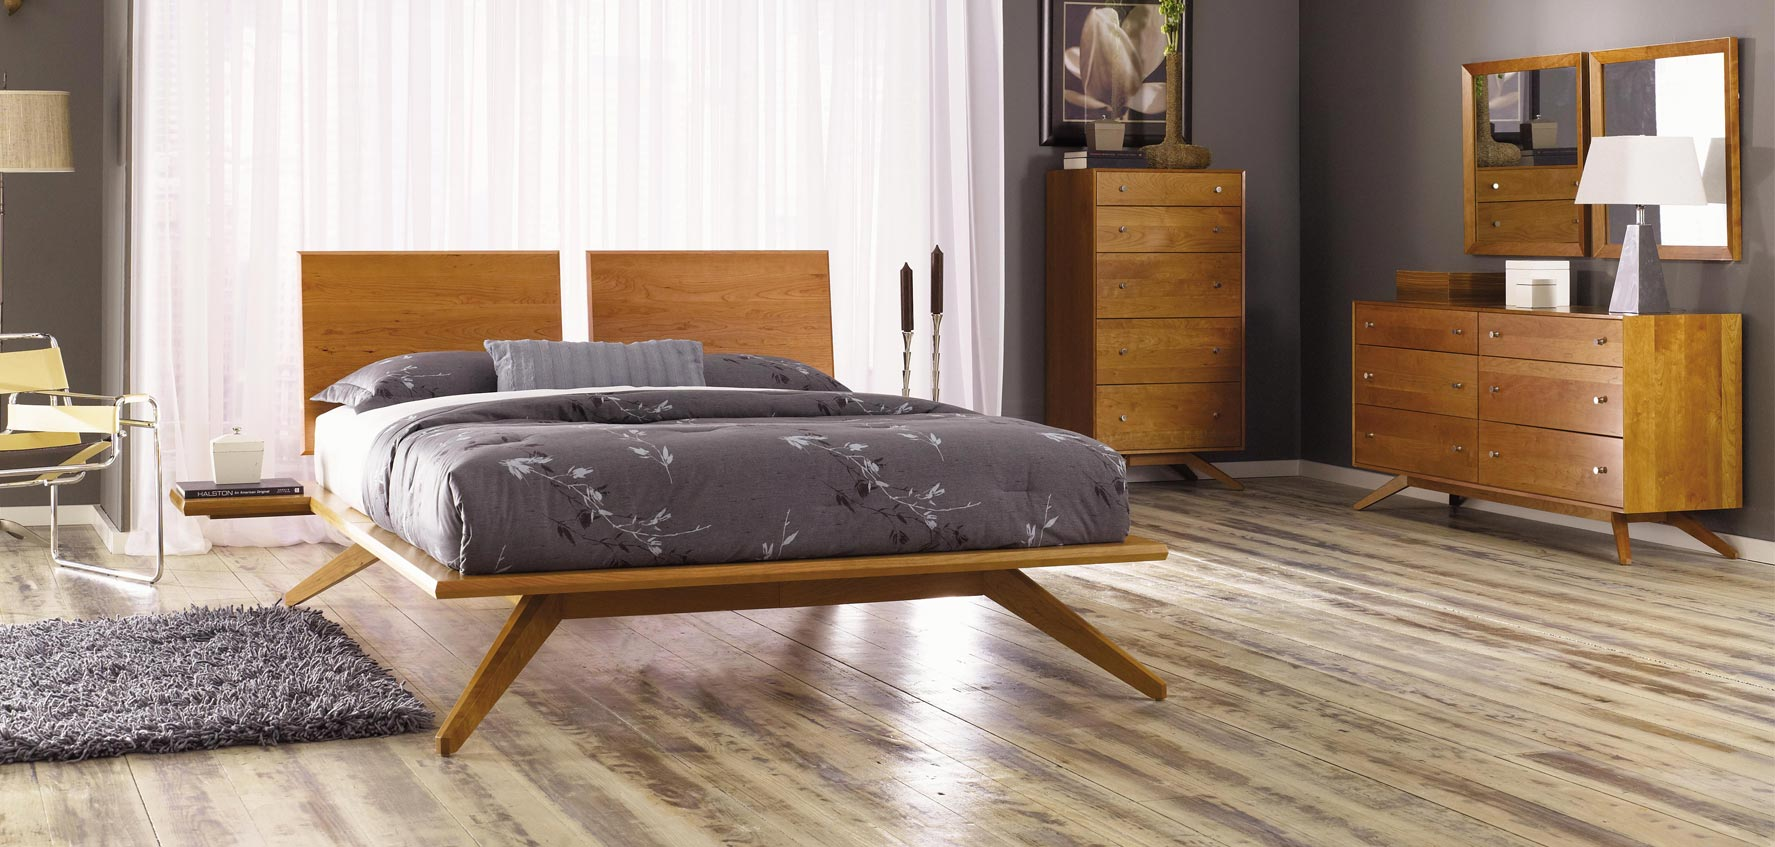 Astrid Furniture by Copeland. Astrid Bedroom Furniture by Copeland   Vermont Woods Studios